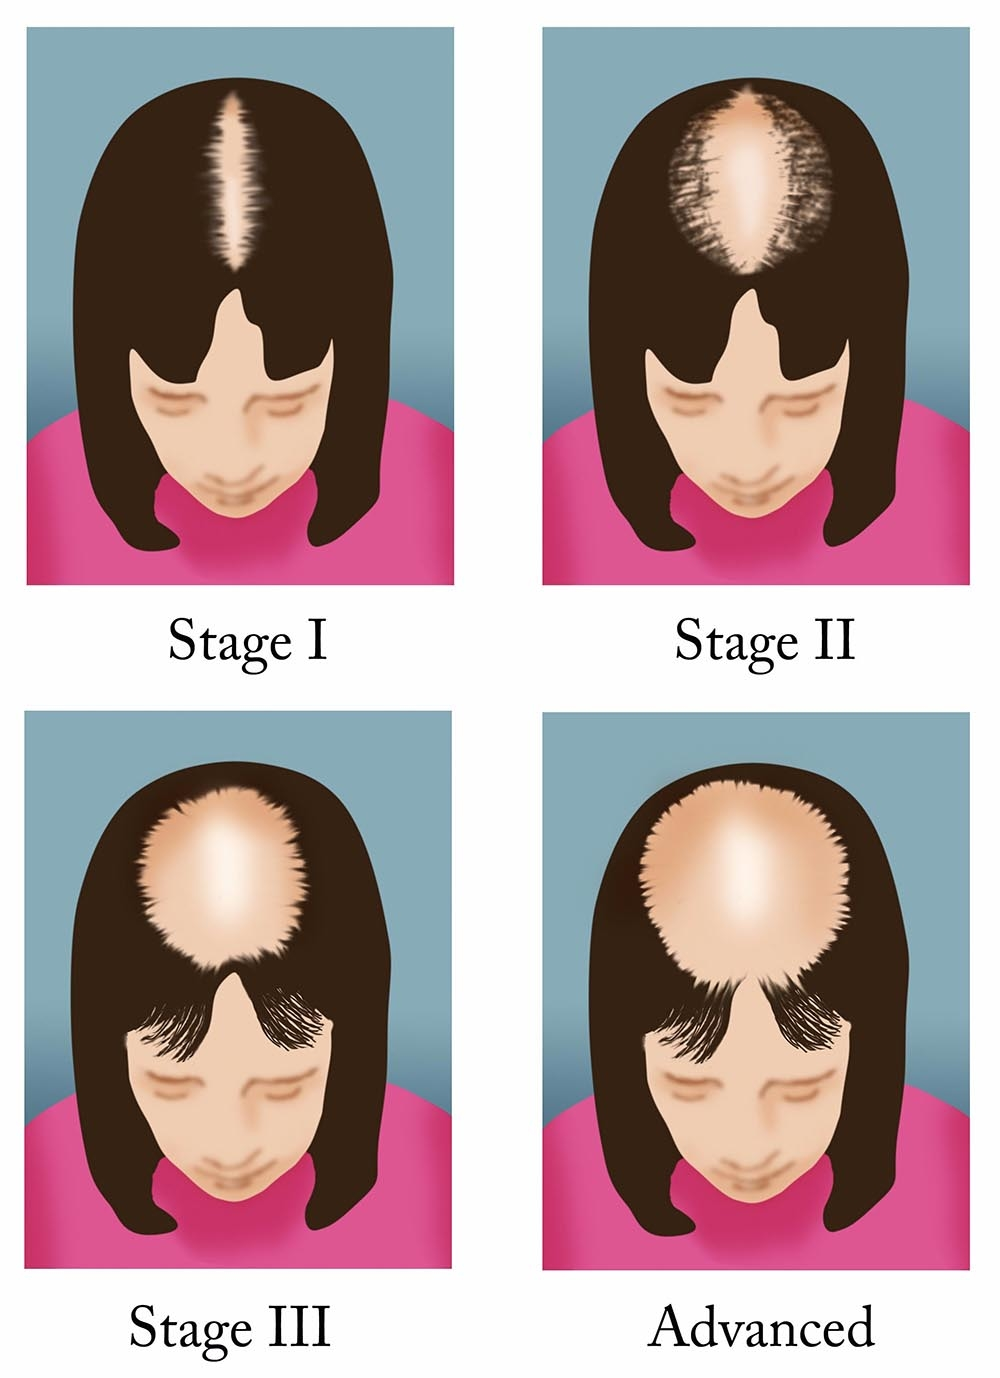 illustration-of-female-pattern-baldness